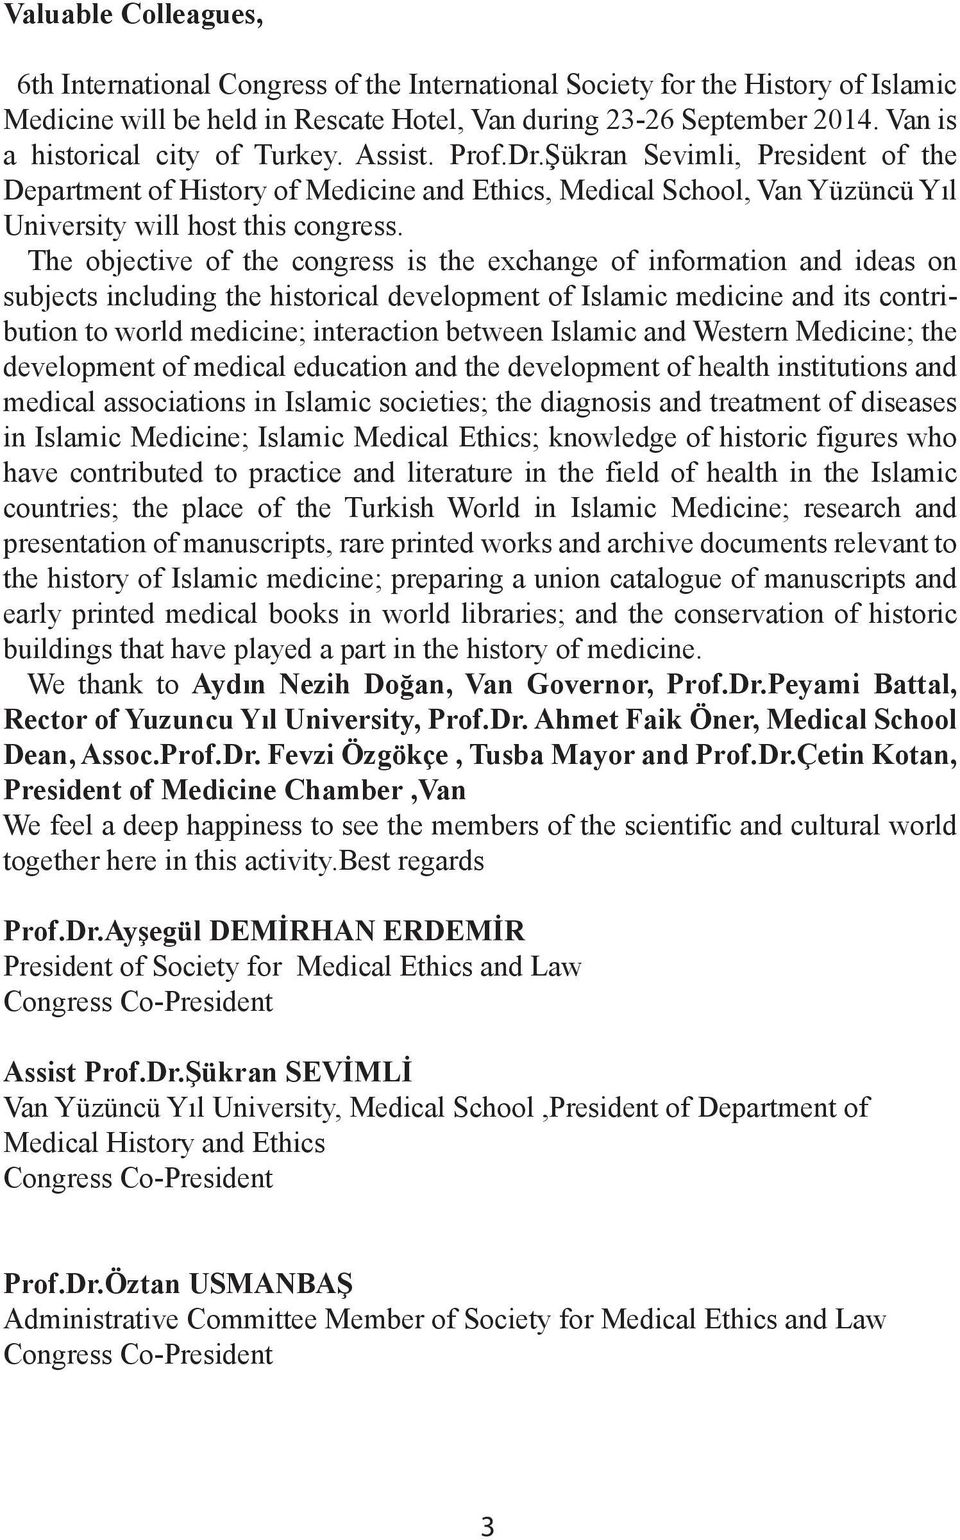 The objective of the congress is the exchange of information and ideas on subjects including the historical development of Islamic medicine and its contribution to world medicine; interaction between